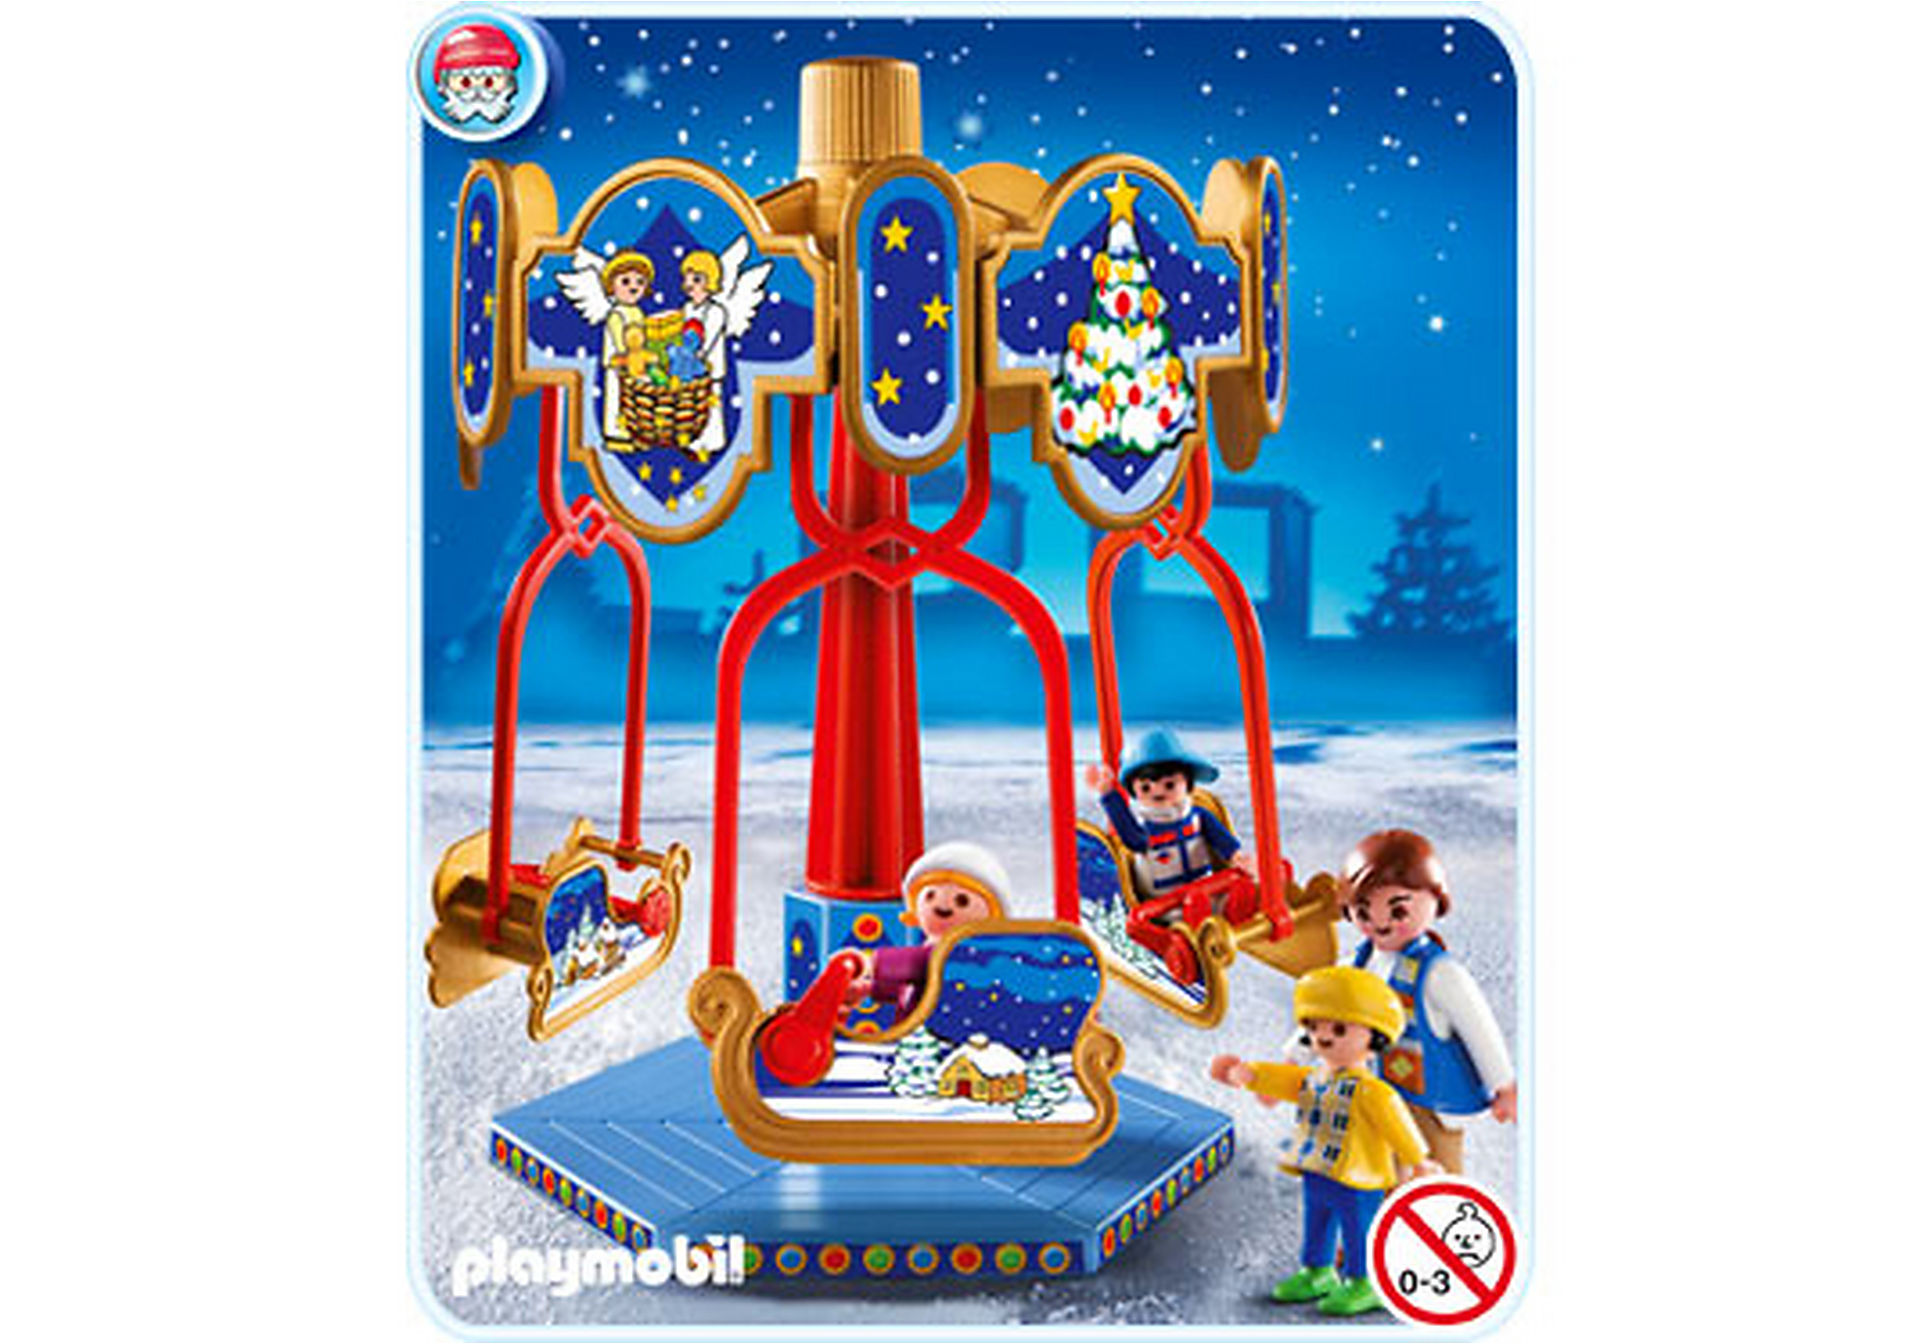 http://media.playmobil.com/i/playmobil/4888-A_product_detail/Manège avec luges